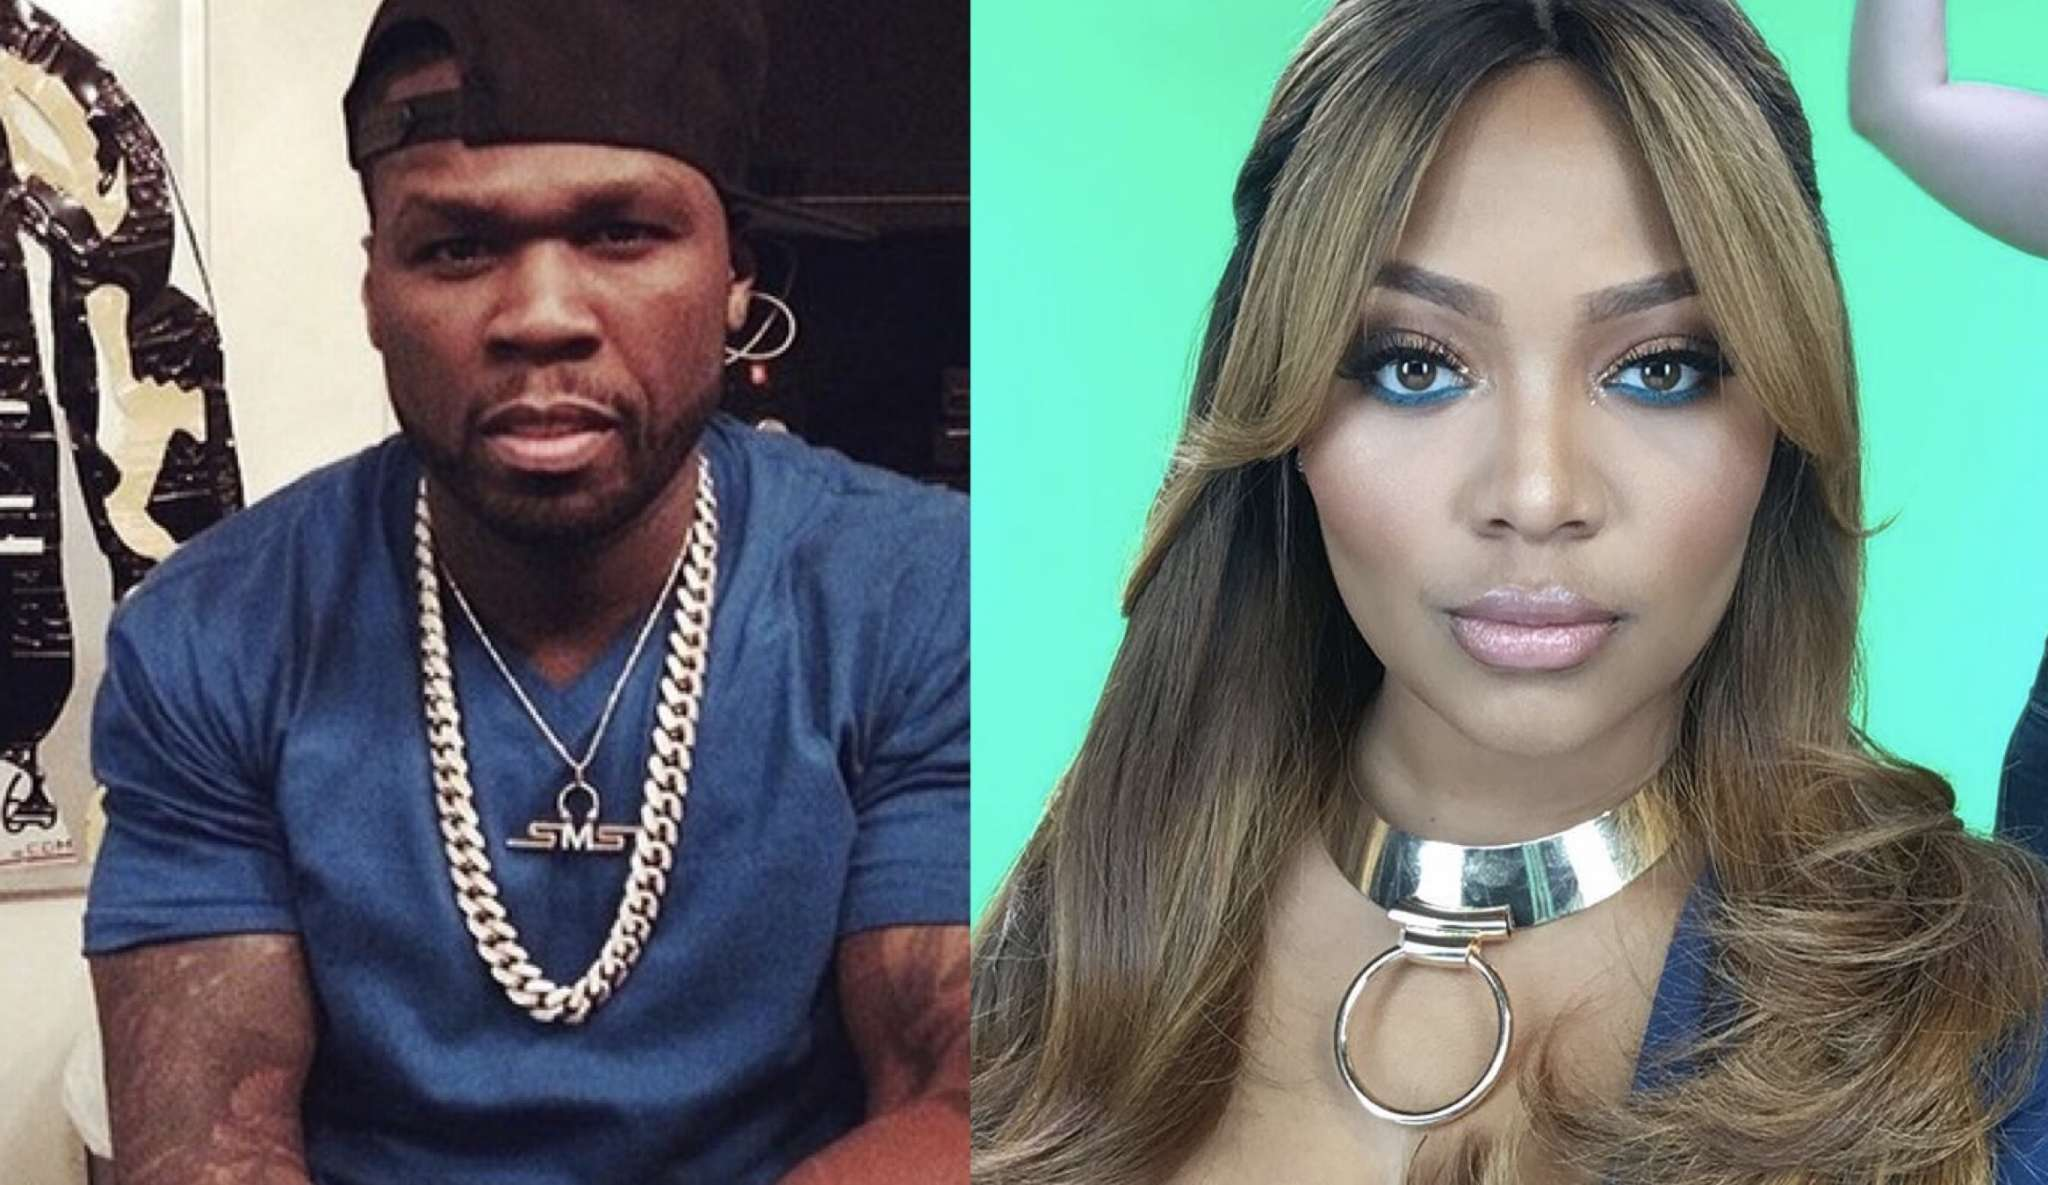 """kandi-burrus-likes-the-song-that-teairra-mari-wrote-about-the-money-she-owes-50-cent-people-say-these-two-are-meant-for-each-other-and-they-want-them-dating"""